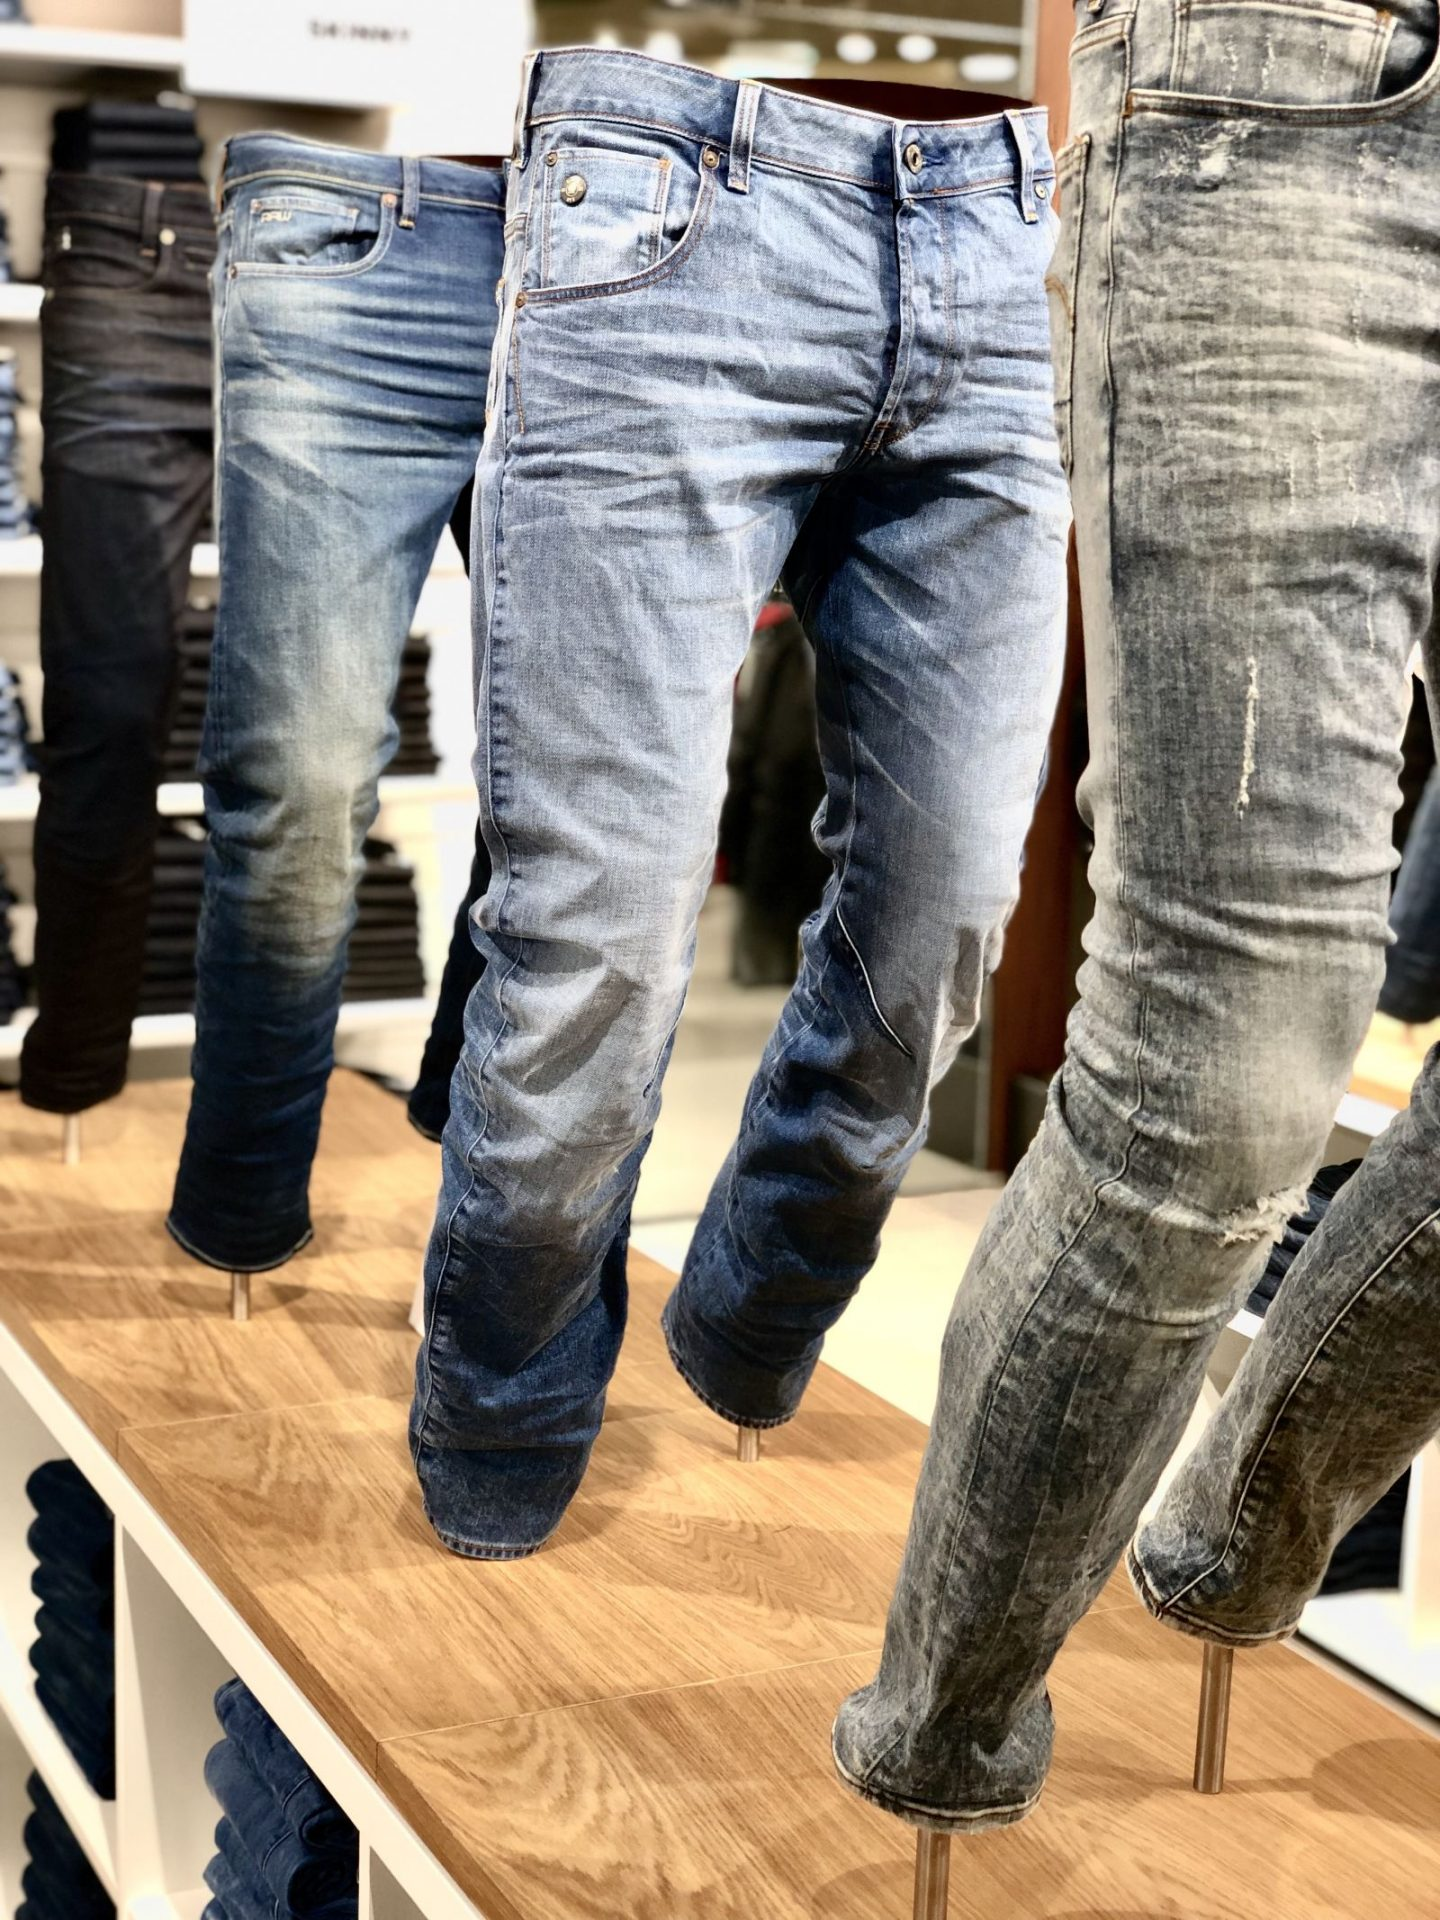 Blue Jeans on display at G-Star Raw Intu Metrocentre in December 2018 at the store launch (Fashion Voyeur Blog)